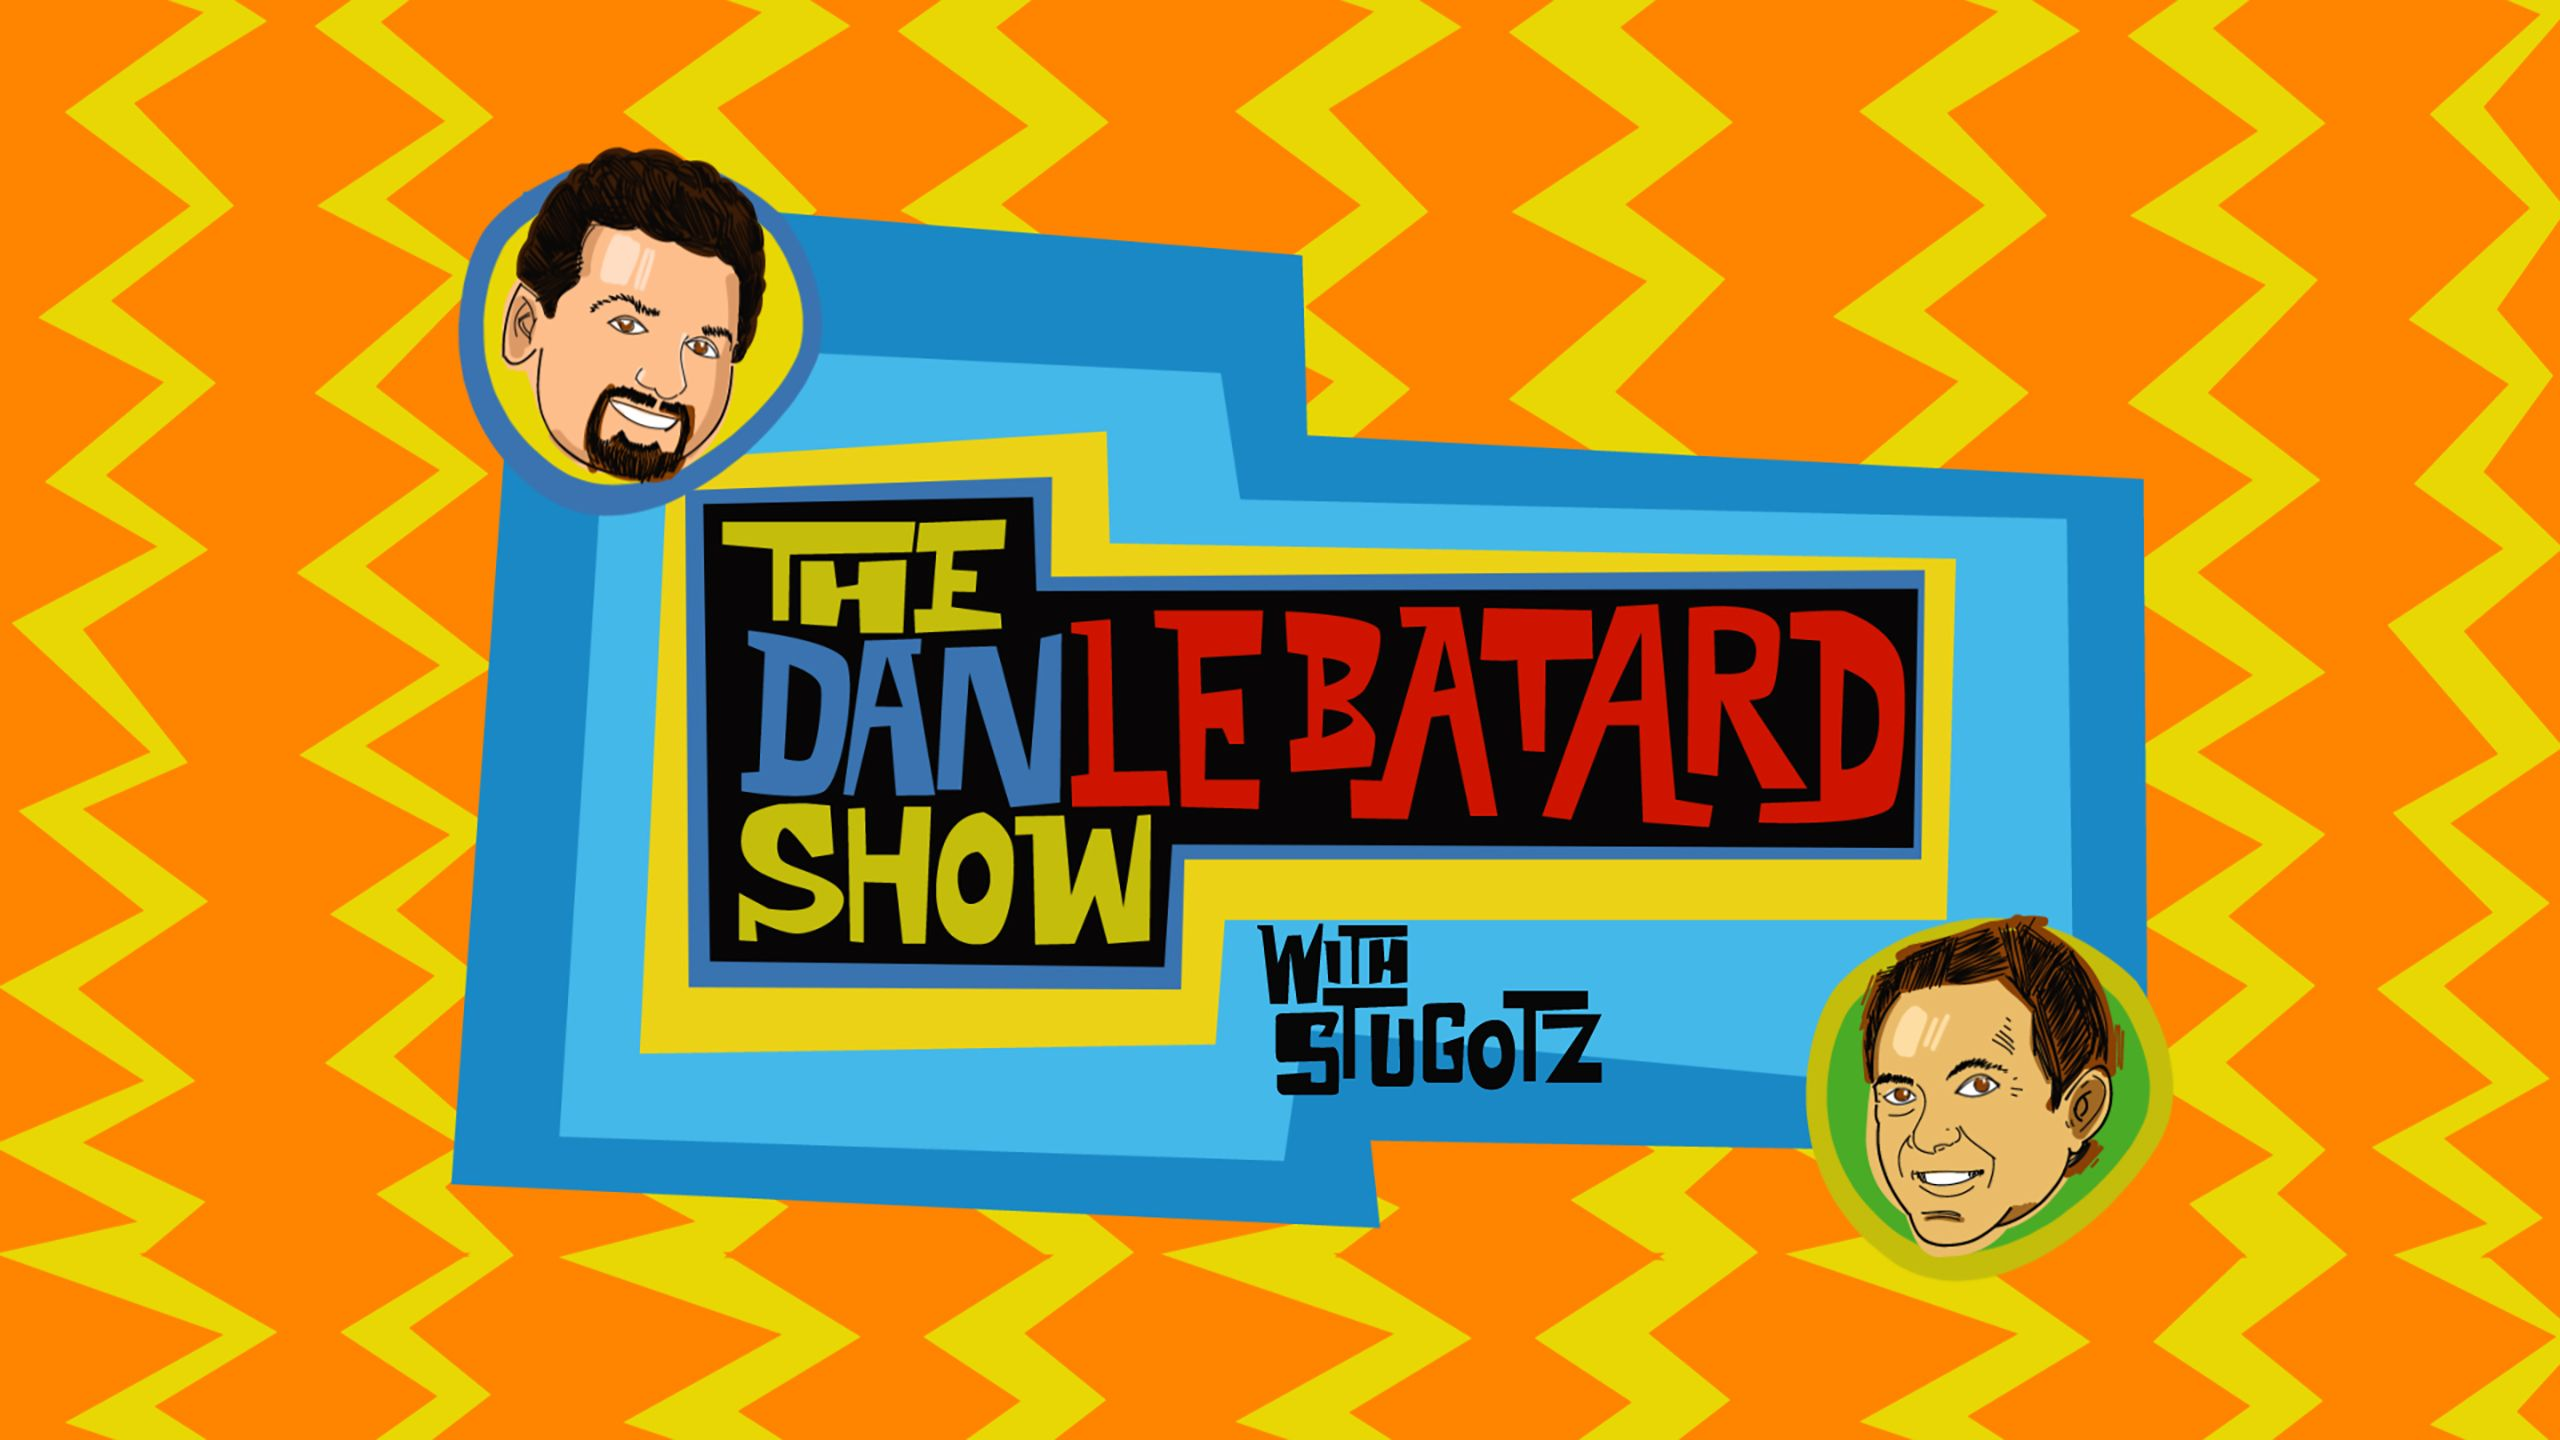 Wed, 1/17 - The Dan Le Batard Show with Stugotz Presented by Progressive